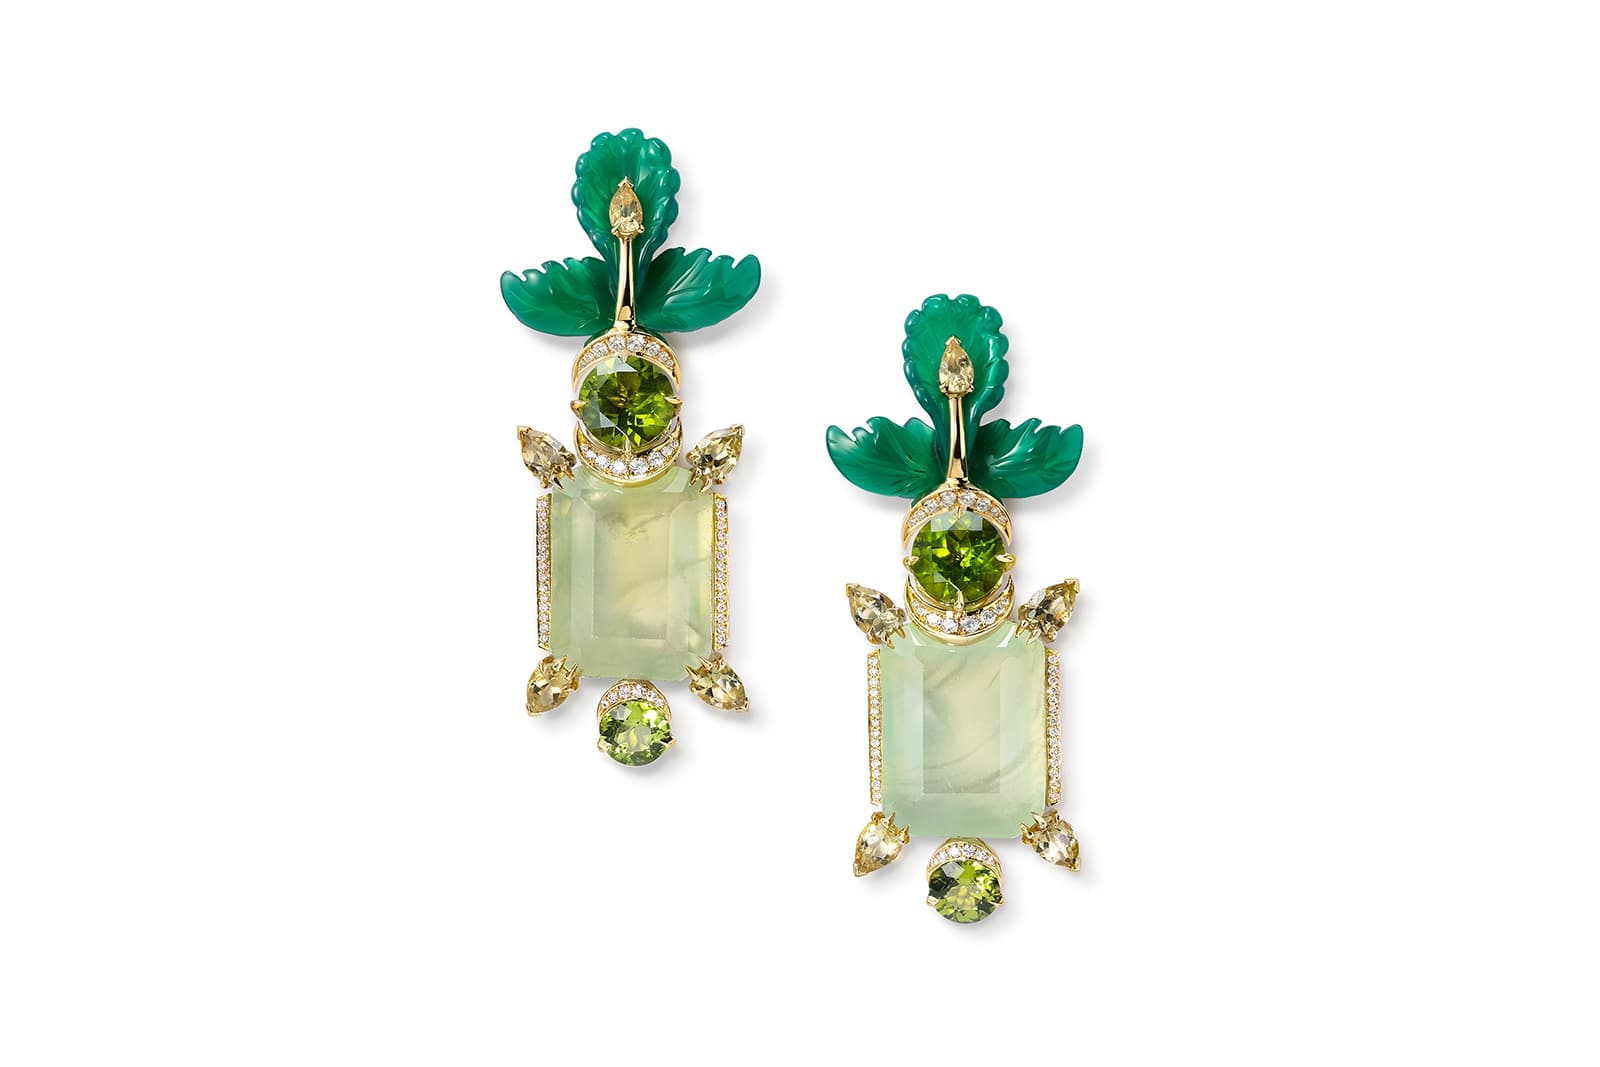 Dreamcatcher Trees earrings by Sabine Roemer set with detachable handcarved green agate leaves, emerald-cut green prehnite, faceted peridots and 0.66cts of white diamonds